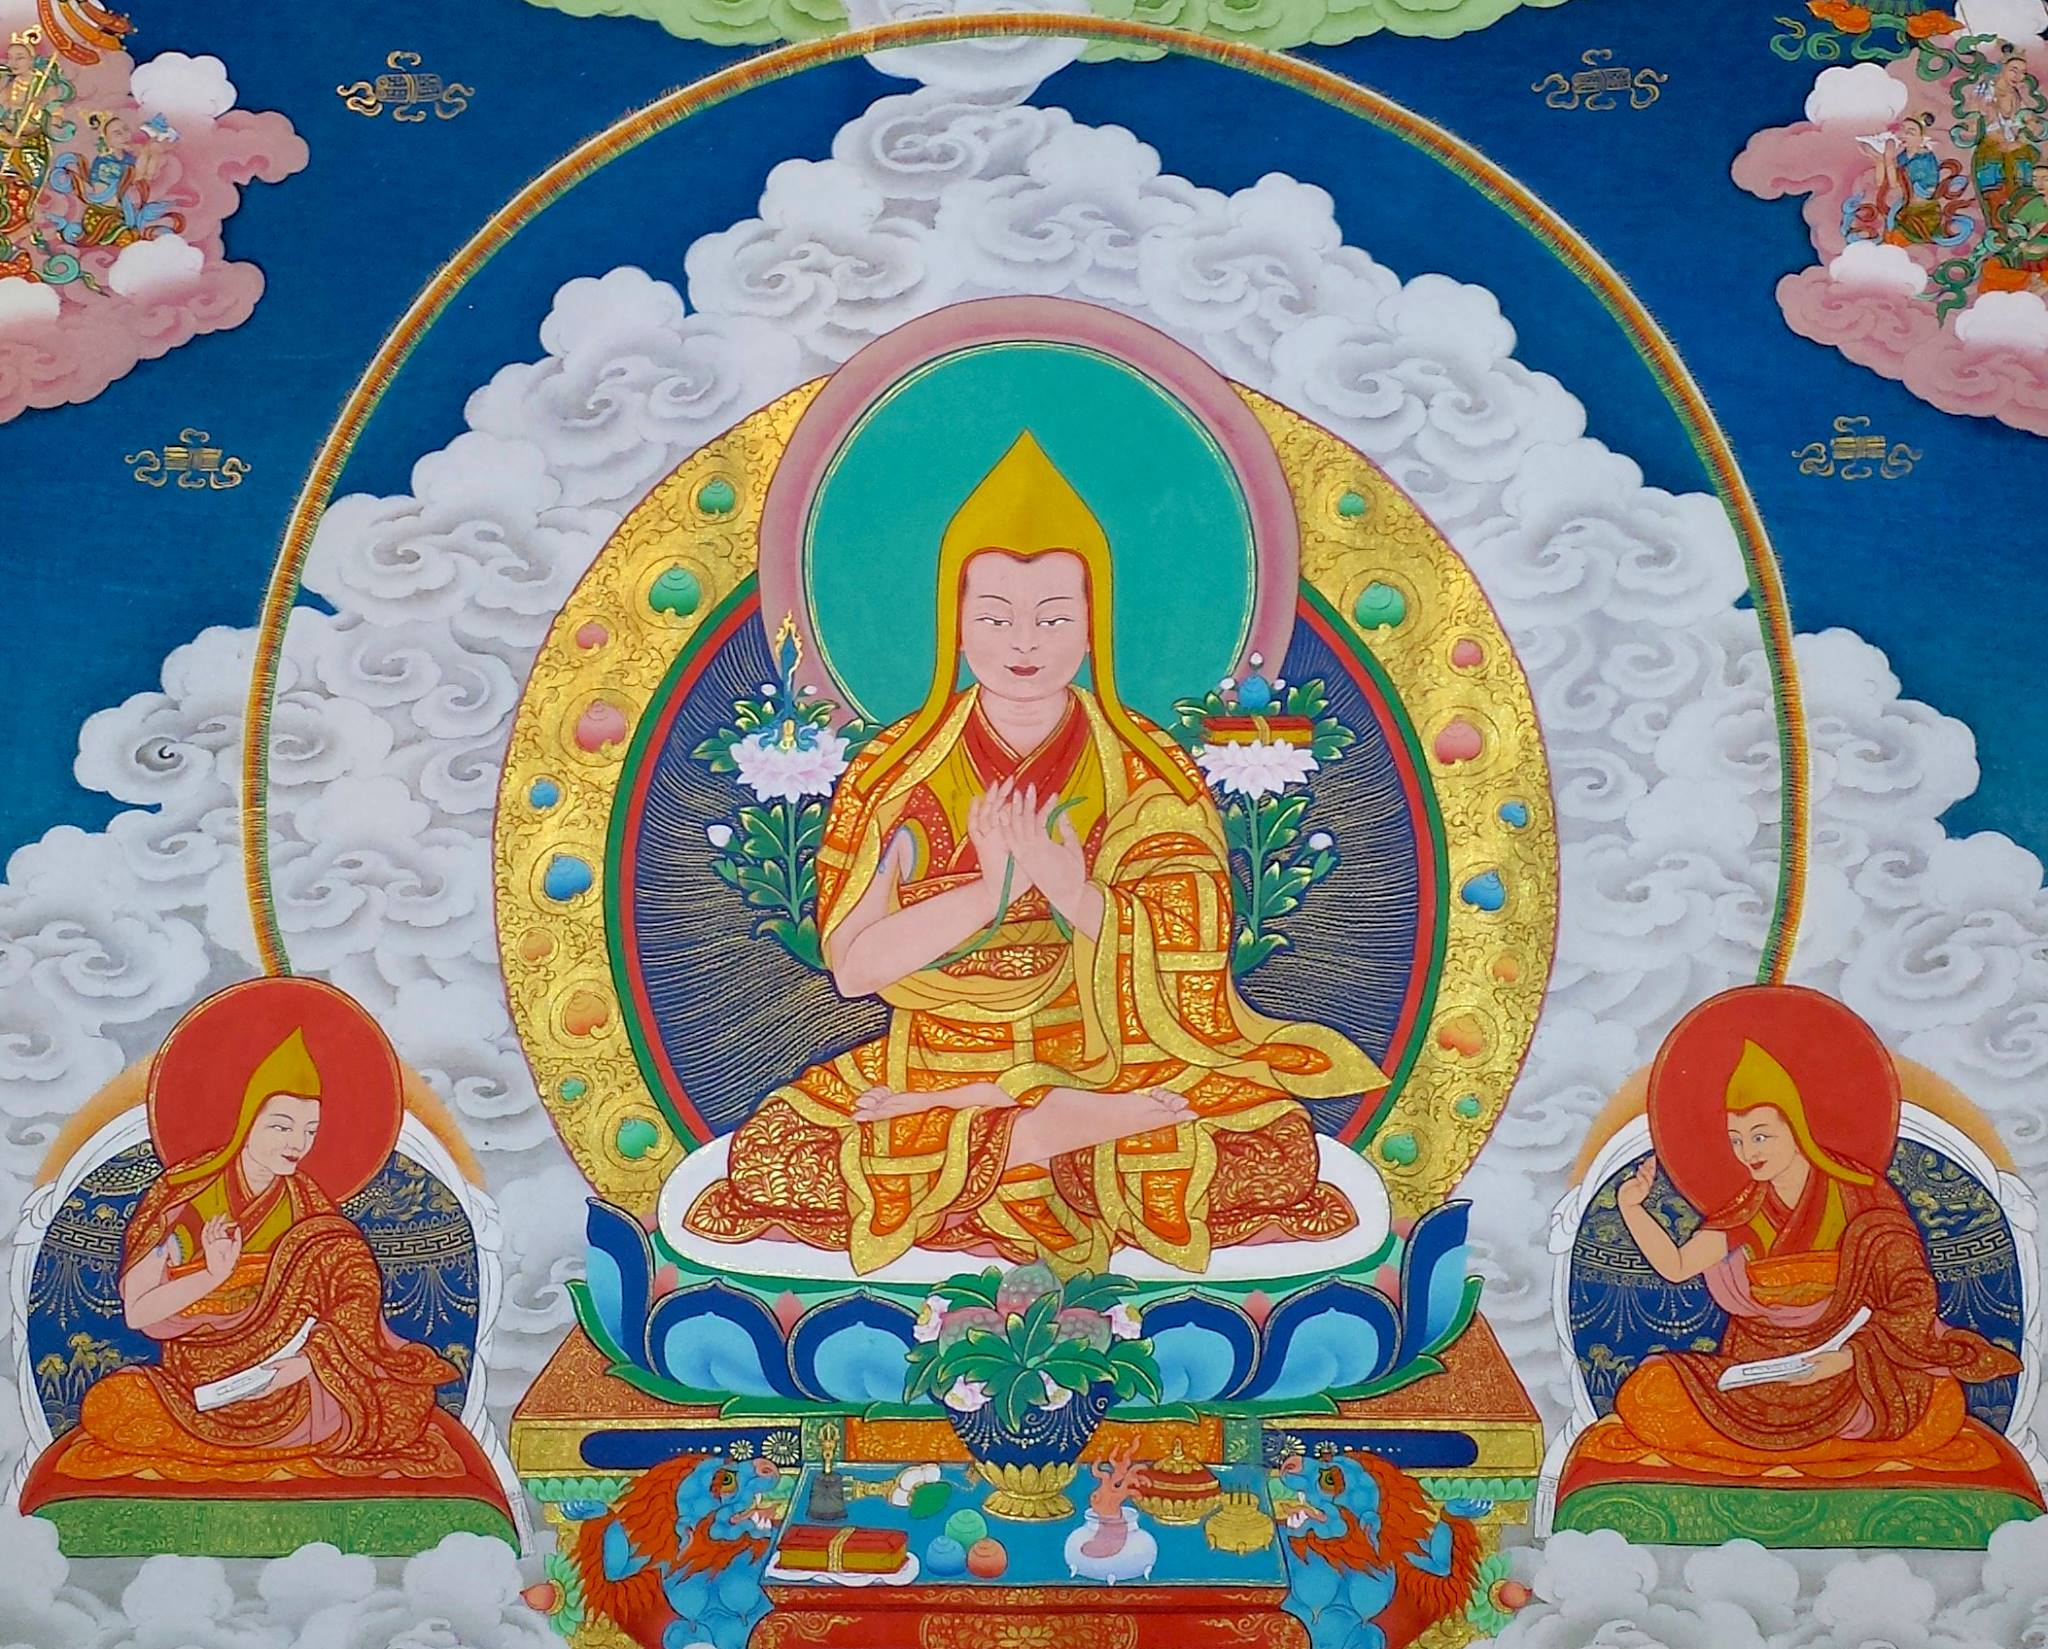 Lama Je Tsongkhapa: May the bliss of the mystical fusion of transcendent wisdom with tender compassion fall like sweet summer rain from dark blue clouds